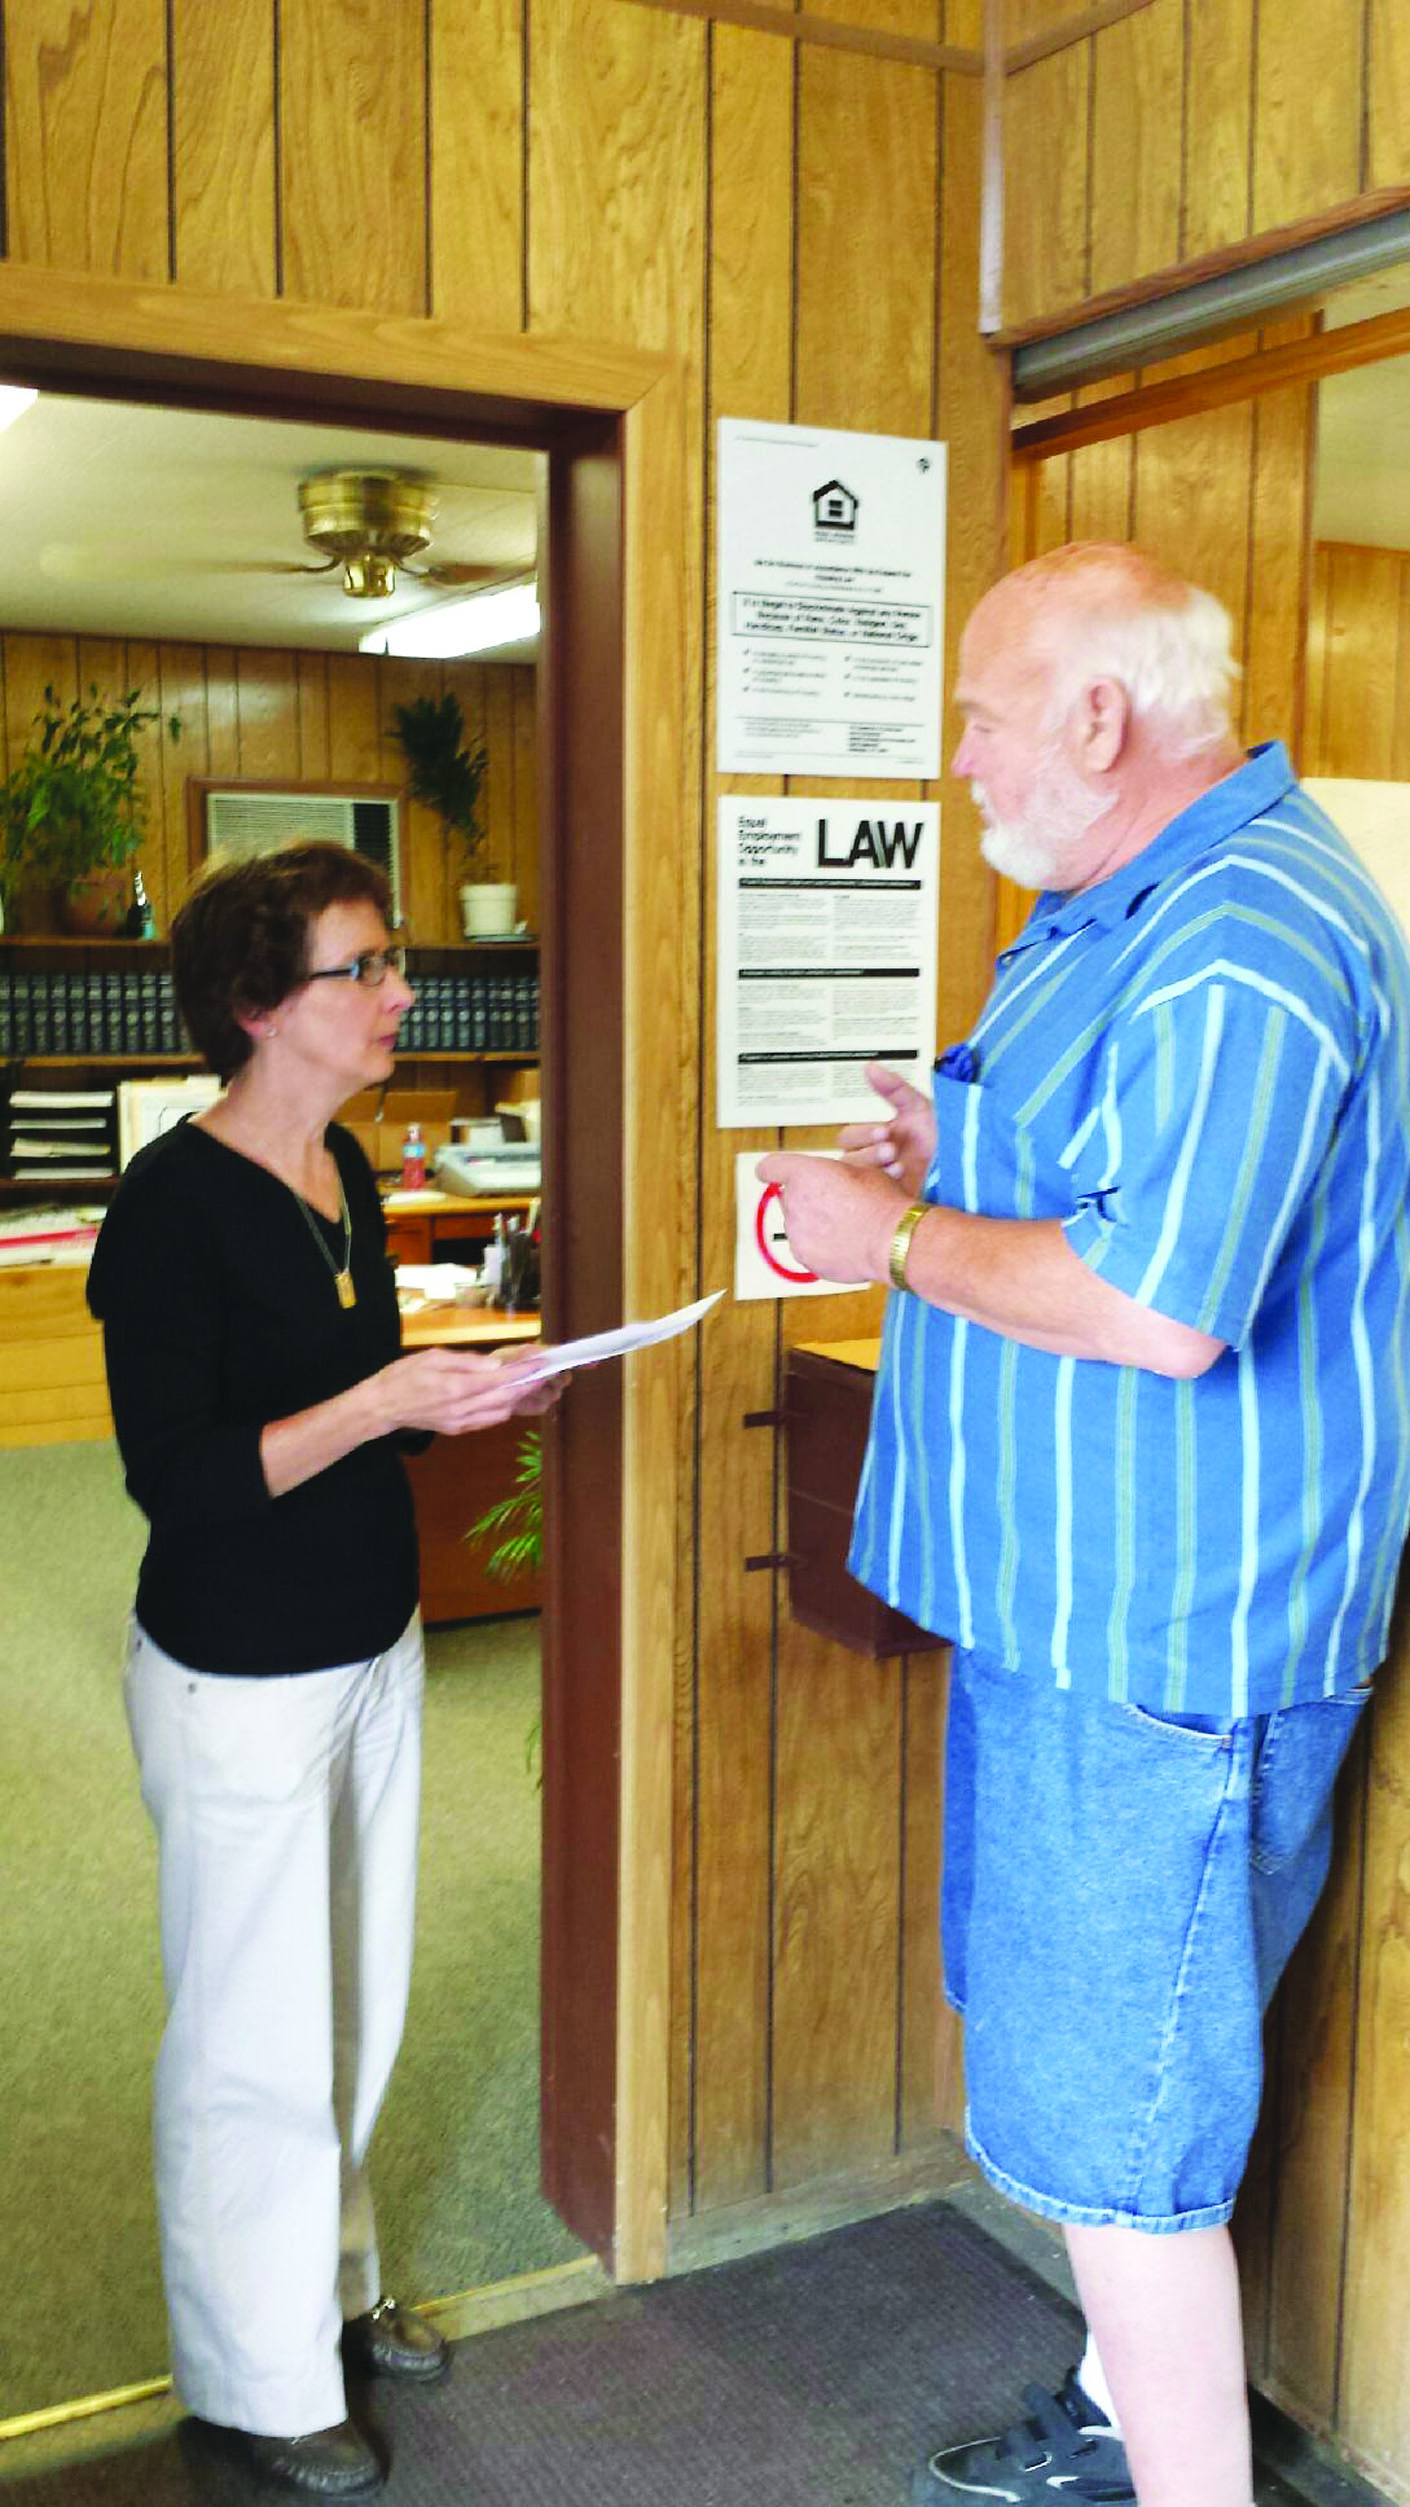 Recall filed for entire city council